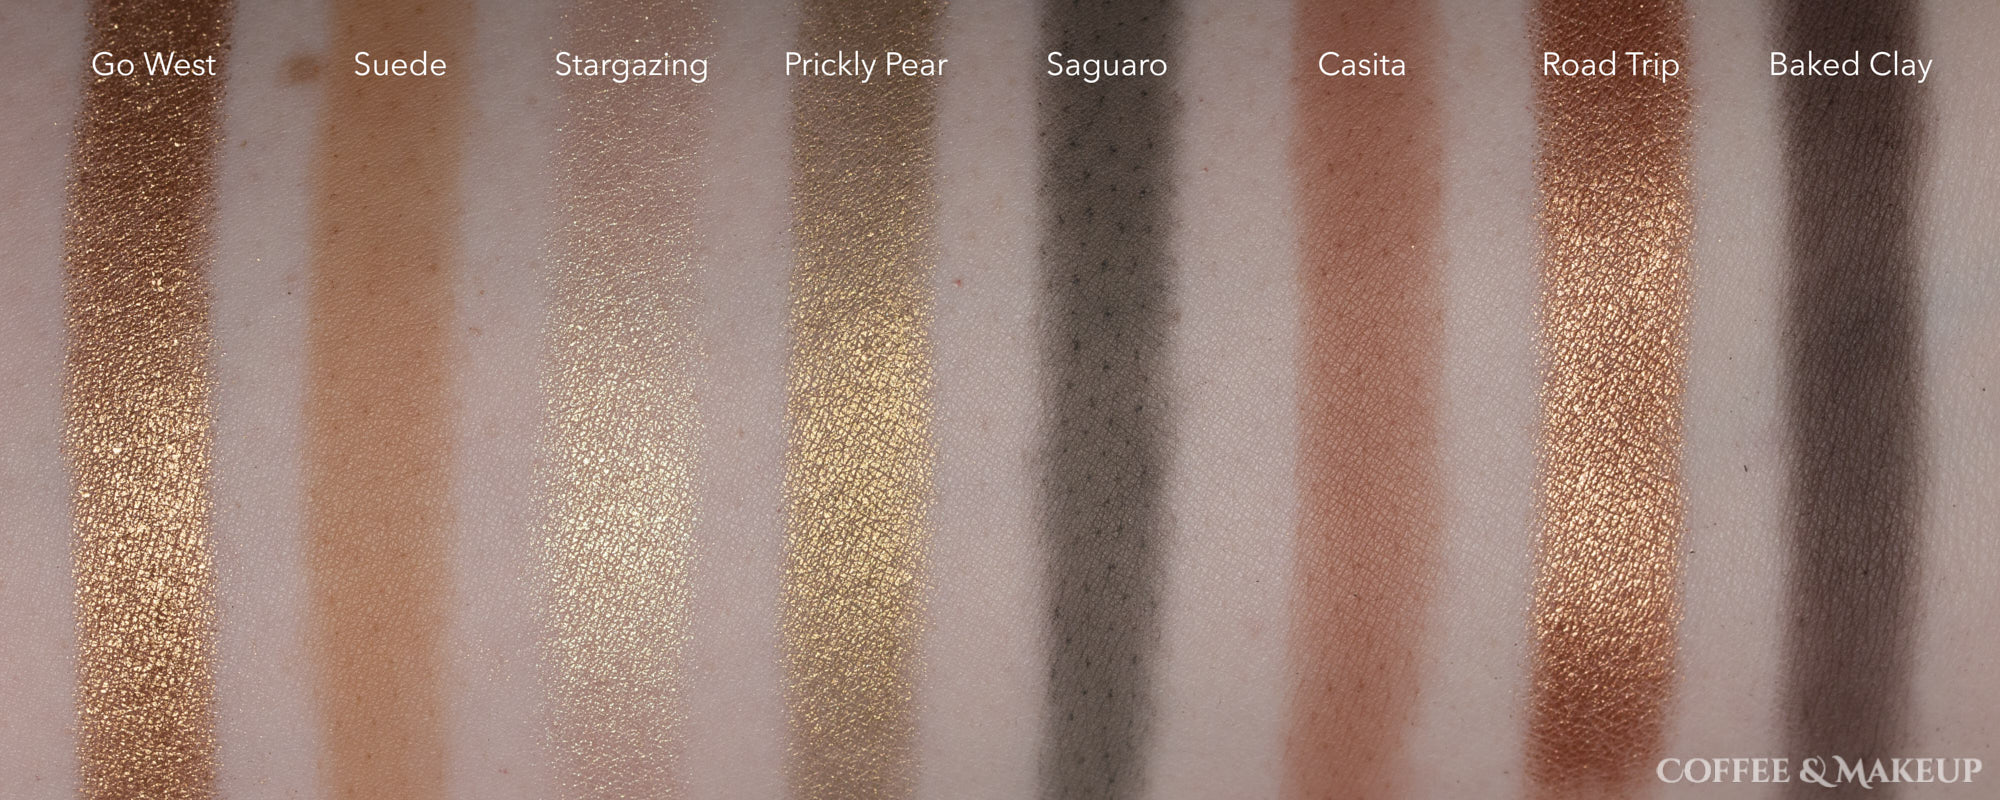 Smashbox Cover Shot Desert Eyeshadow Palette Swatches